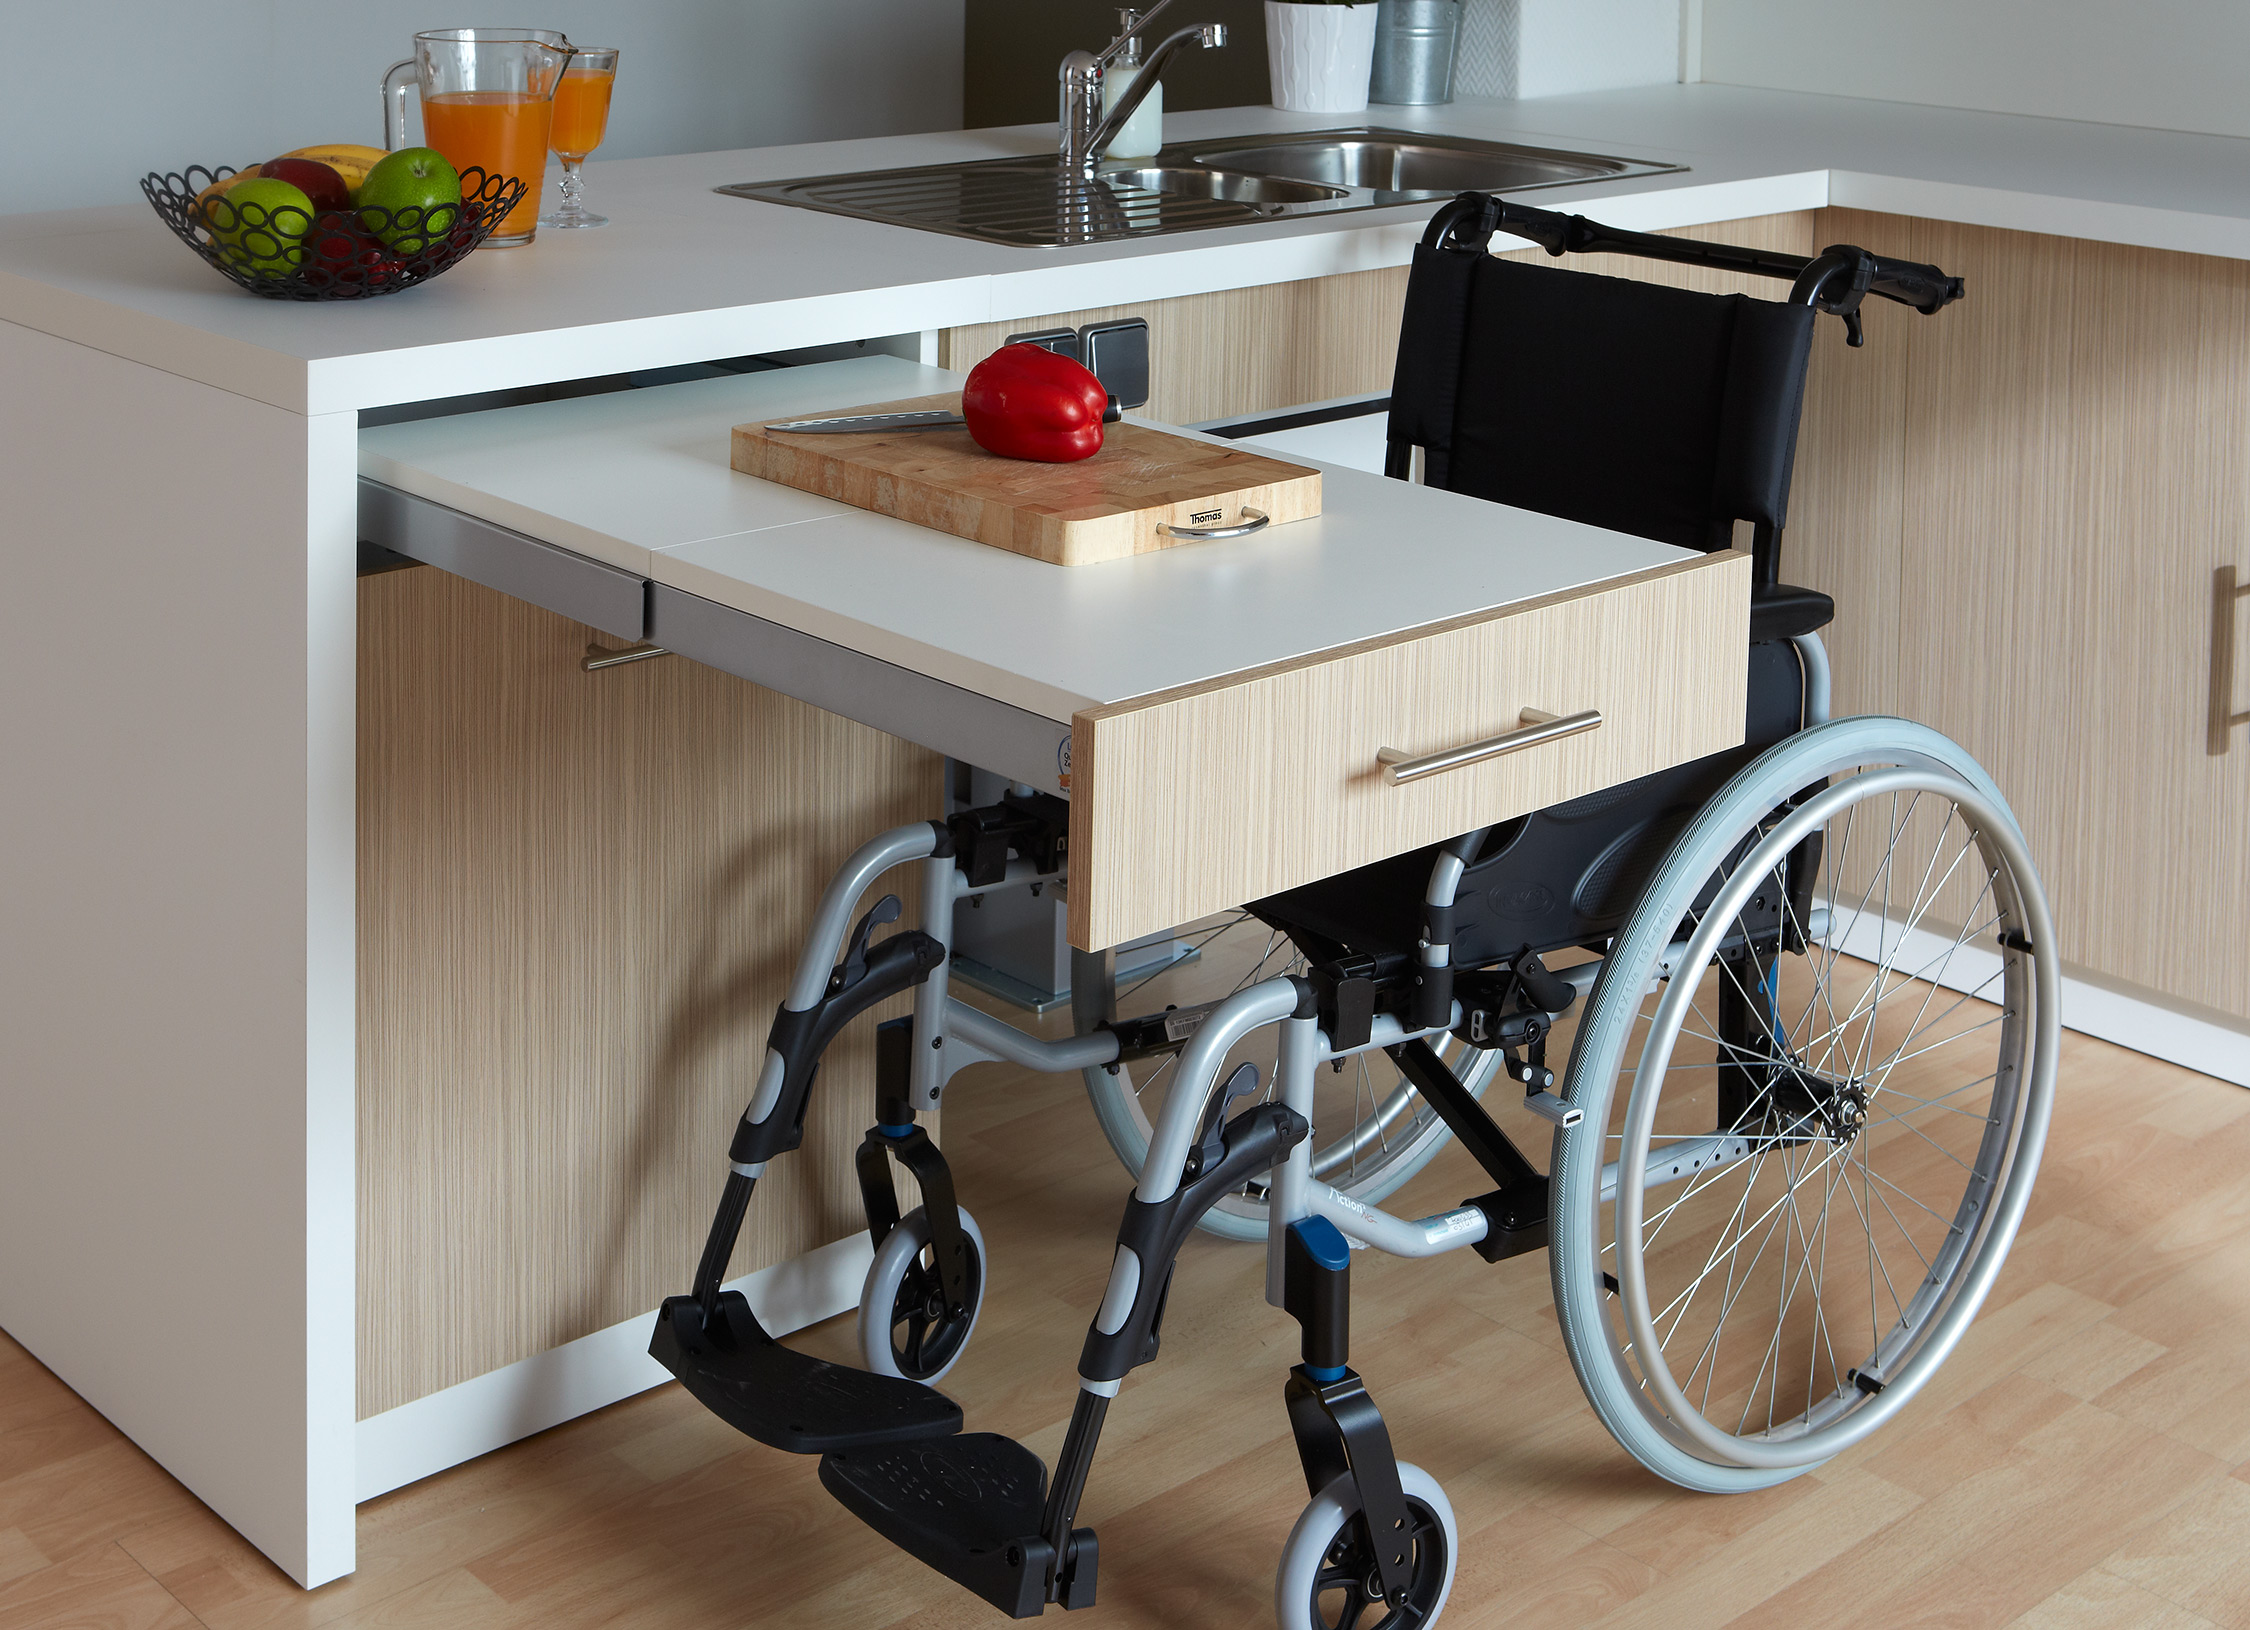 Cuisine adapt e pmr avec modulhome for Table escamotable de cuisine